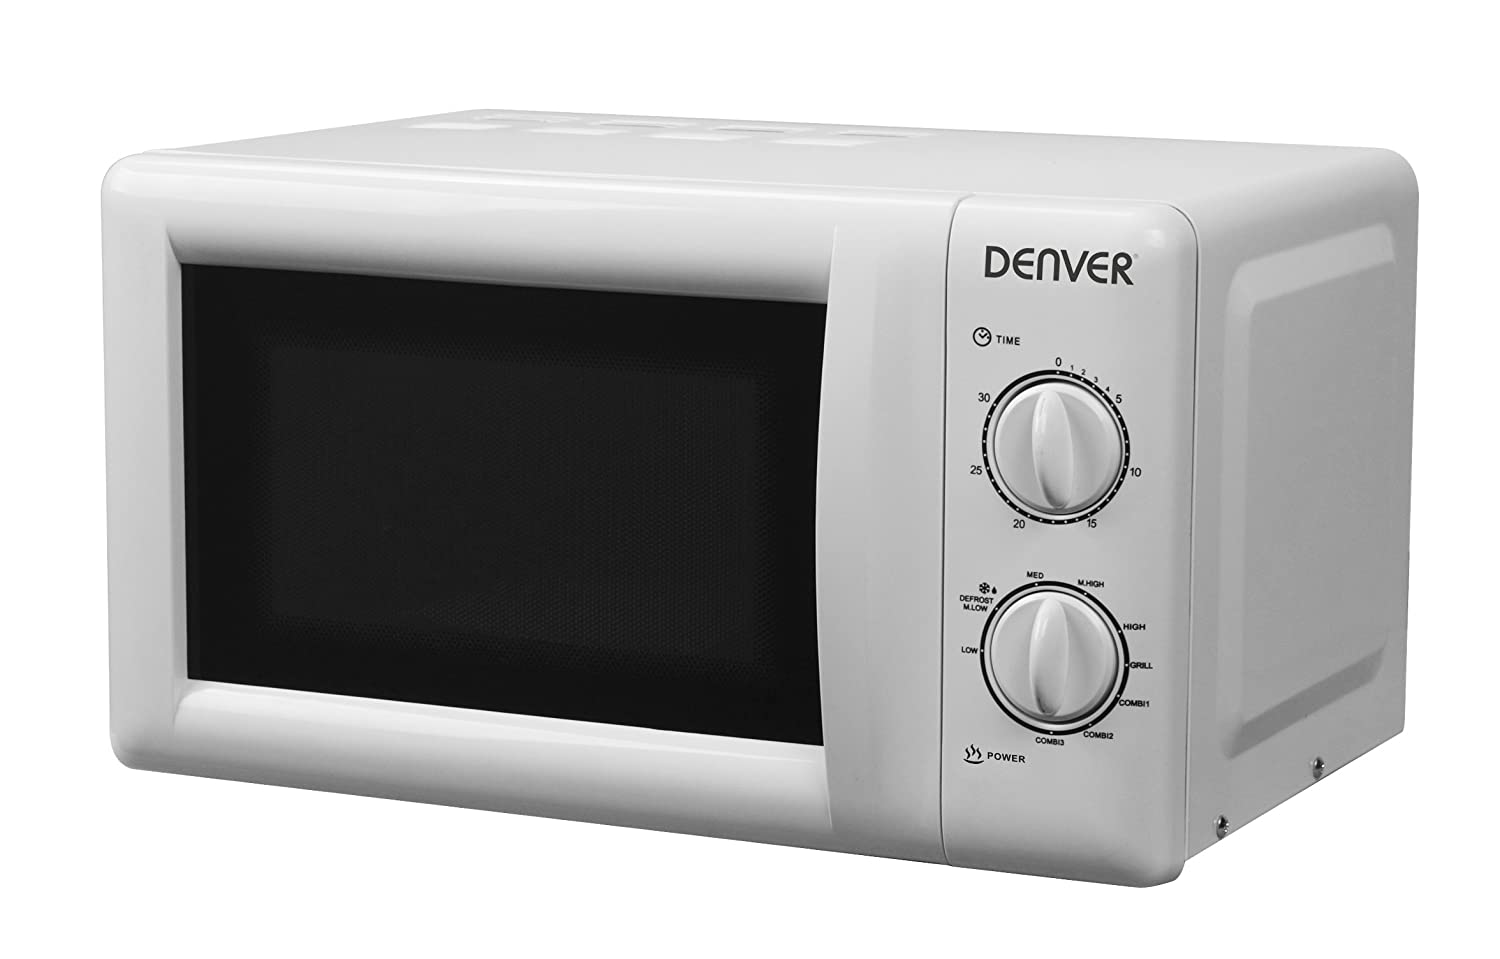 Denver OG-2030 Microondas con Grill Acero Inoxidable 800W ...